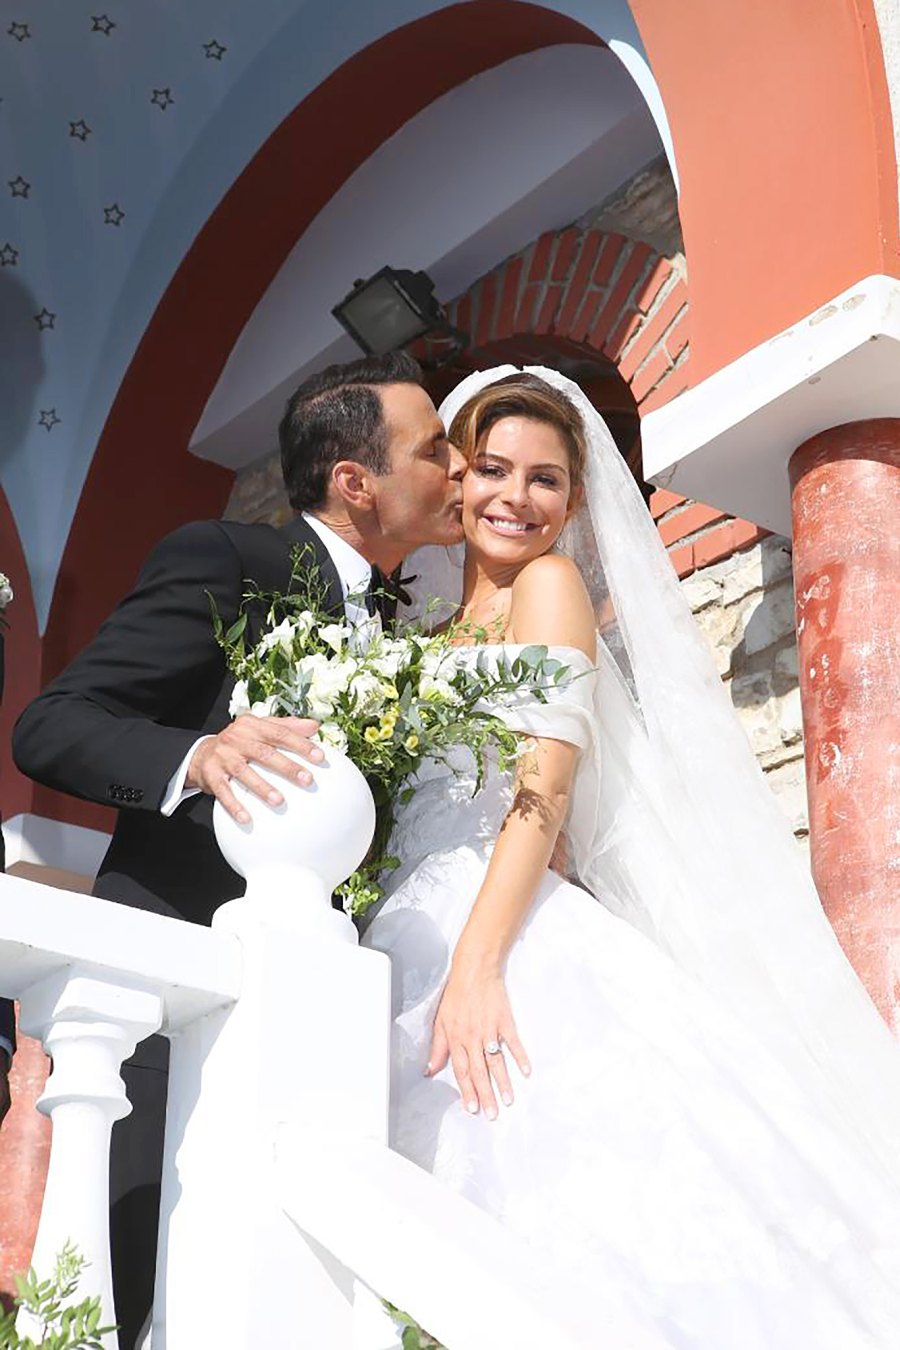 Maria Menounos Marries Keven Undergaro With Second Wedding ...